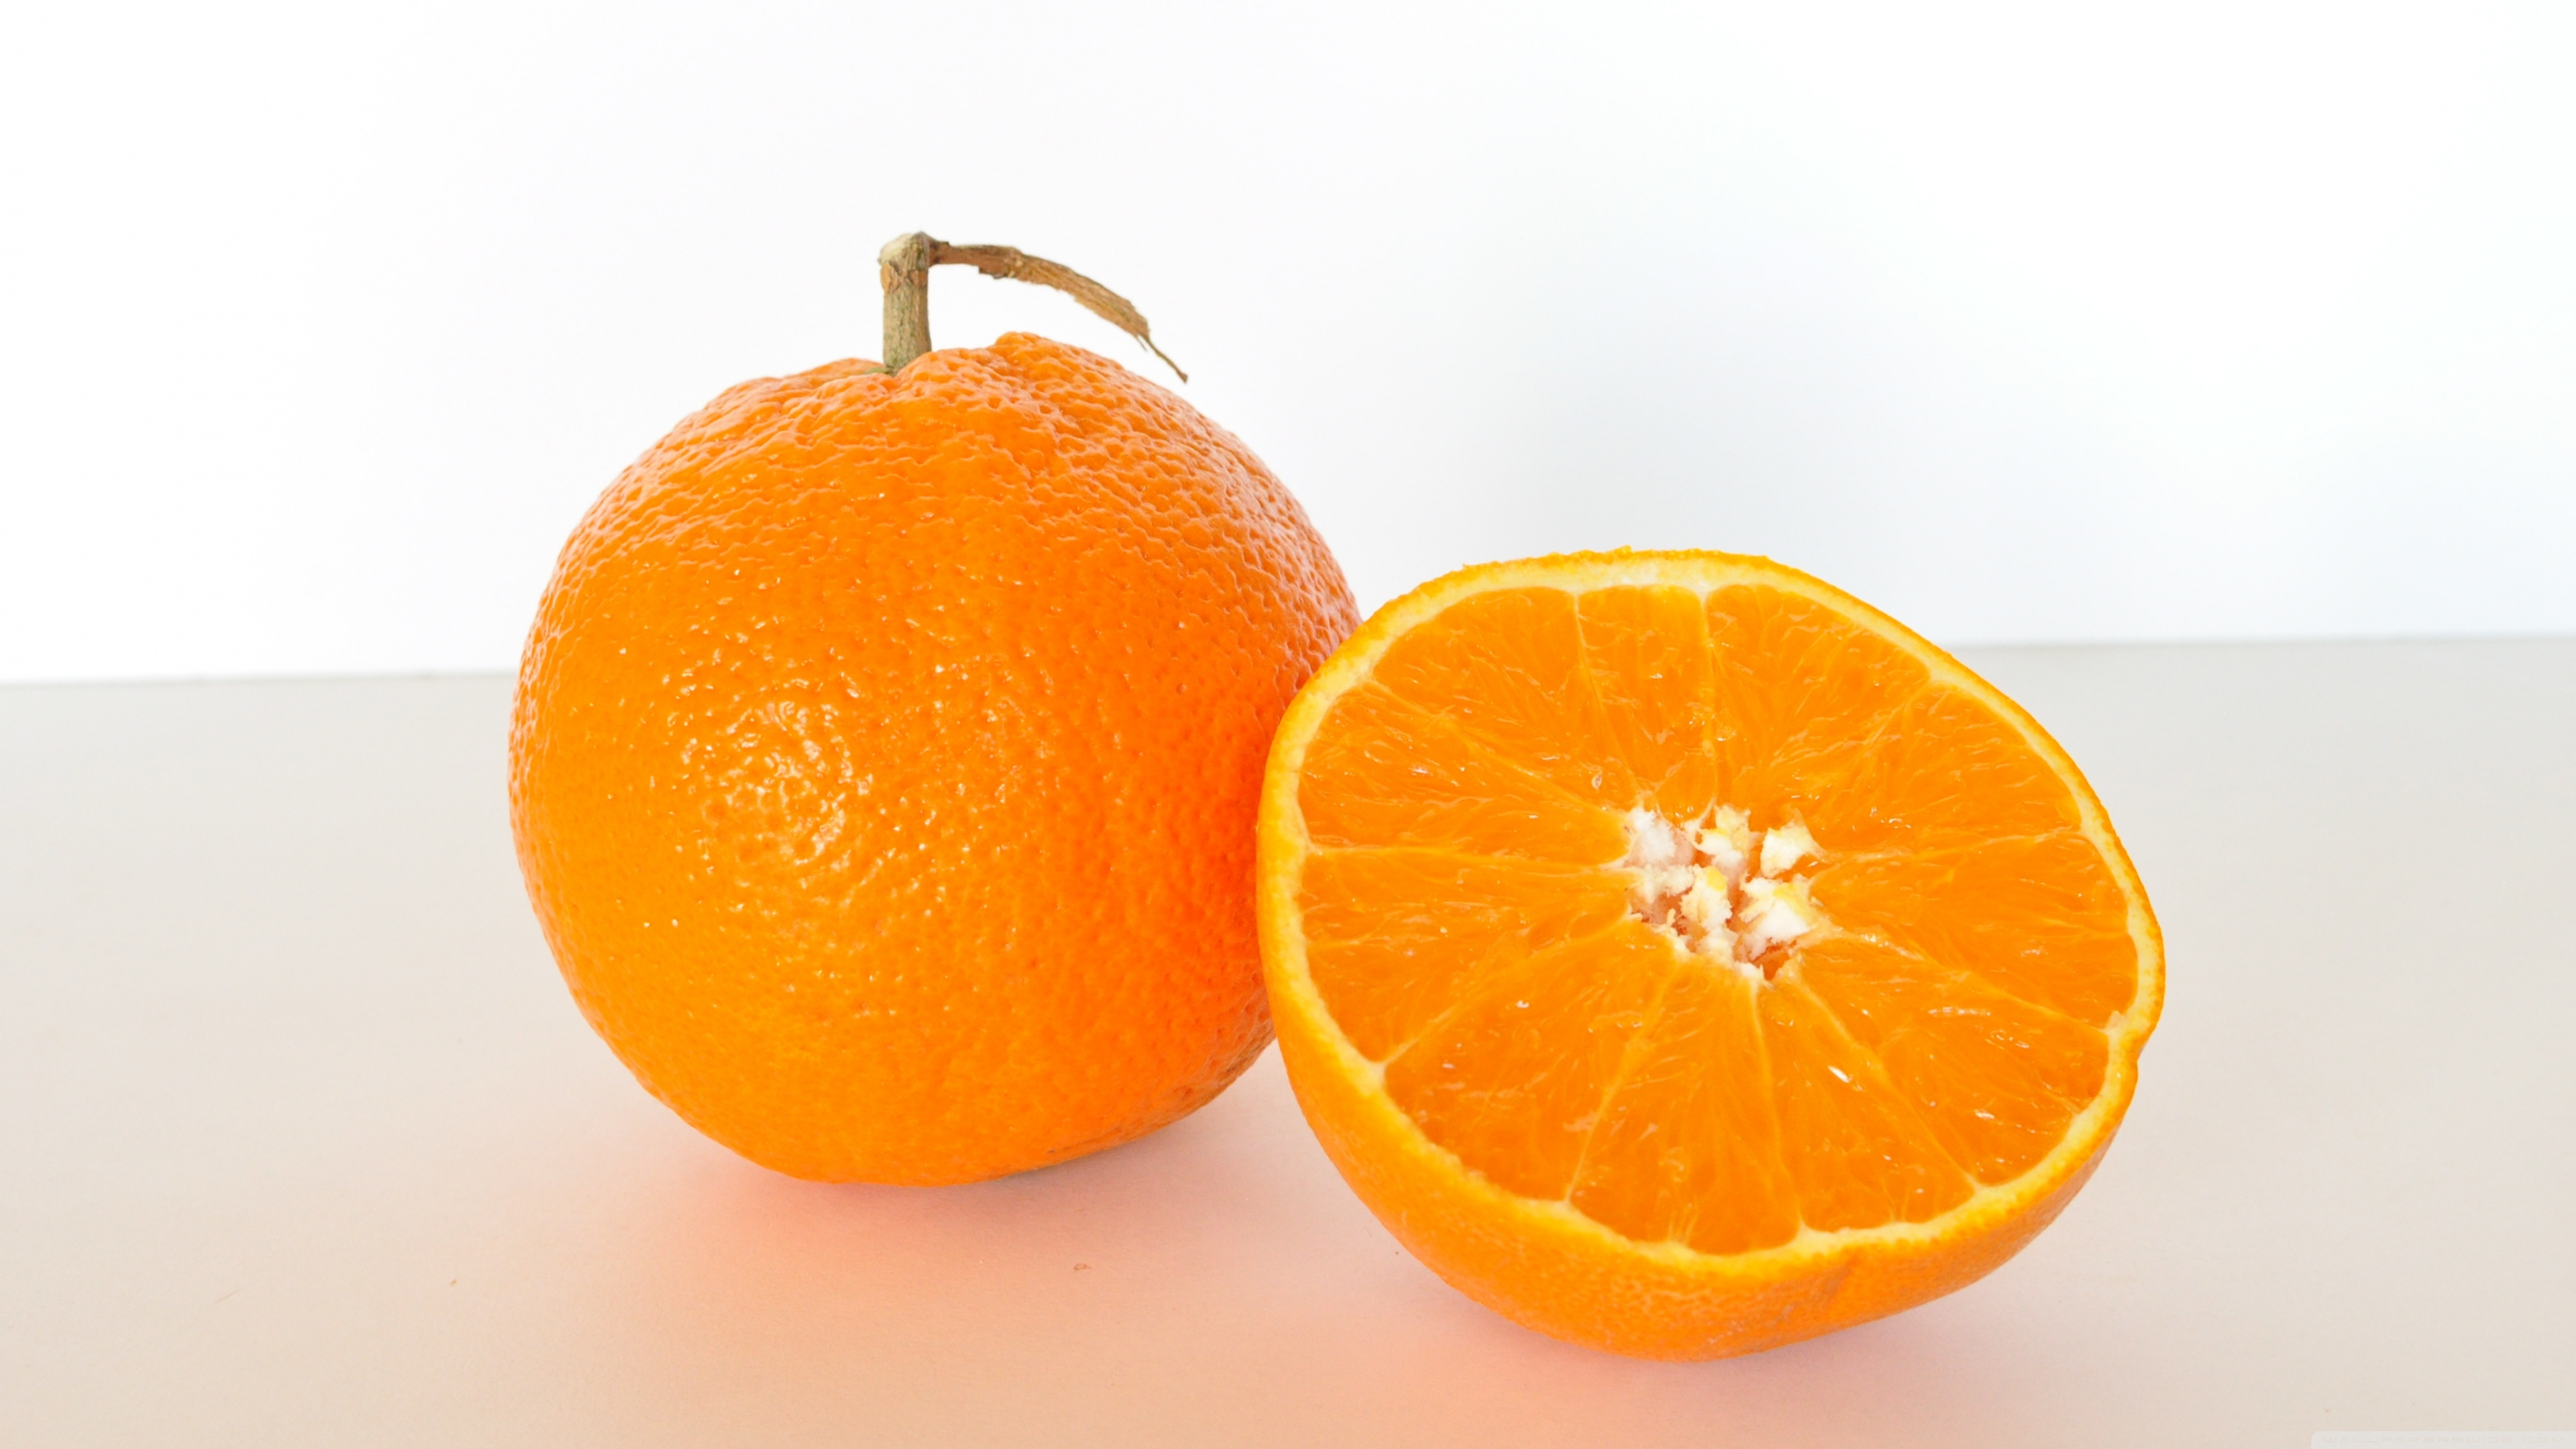 Orange Fruit 4K HD Desktop Wallpaper for 4K Ultra HD TV Wide 3840x2160